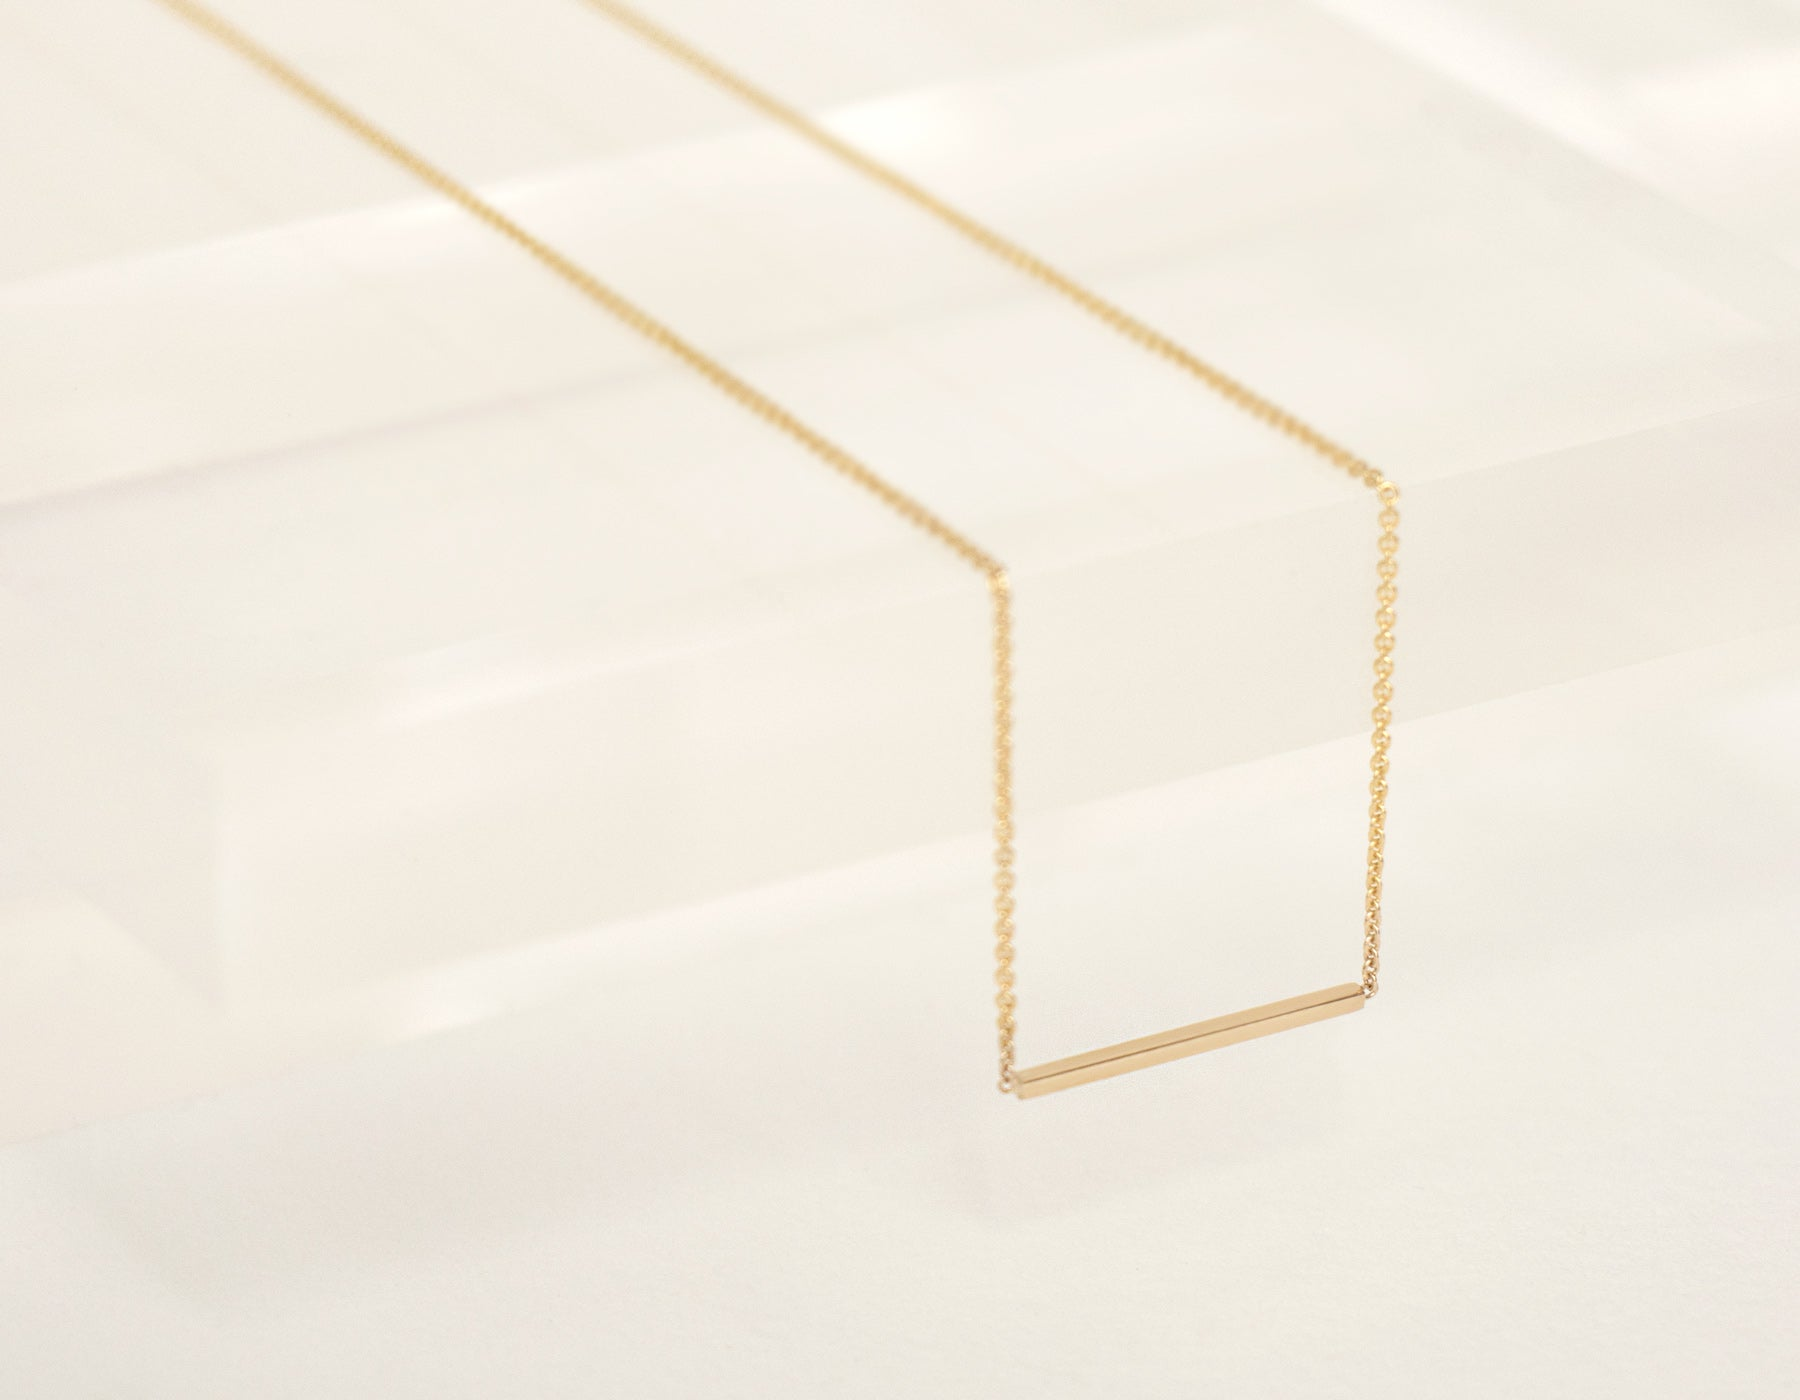 Dangling close up on 14k solid yellow gold Line Necklace geometric minimalist thin chain Vrai & Oro